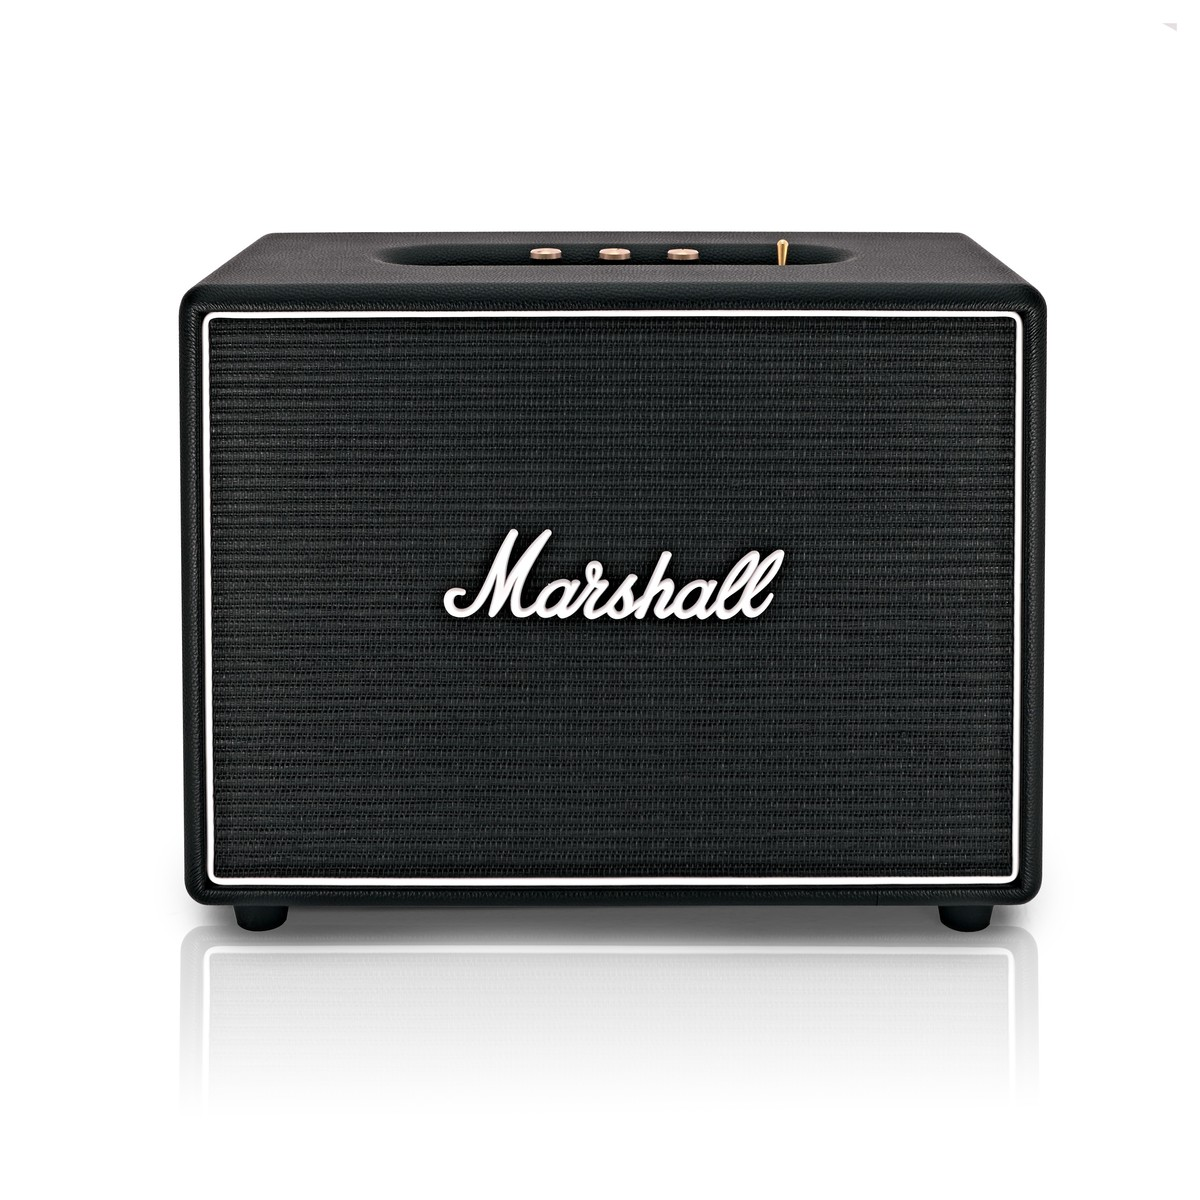 Marshall Woburn Bluetooth Speaker, Classic Line